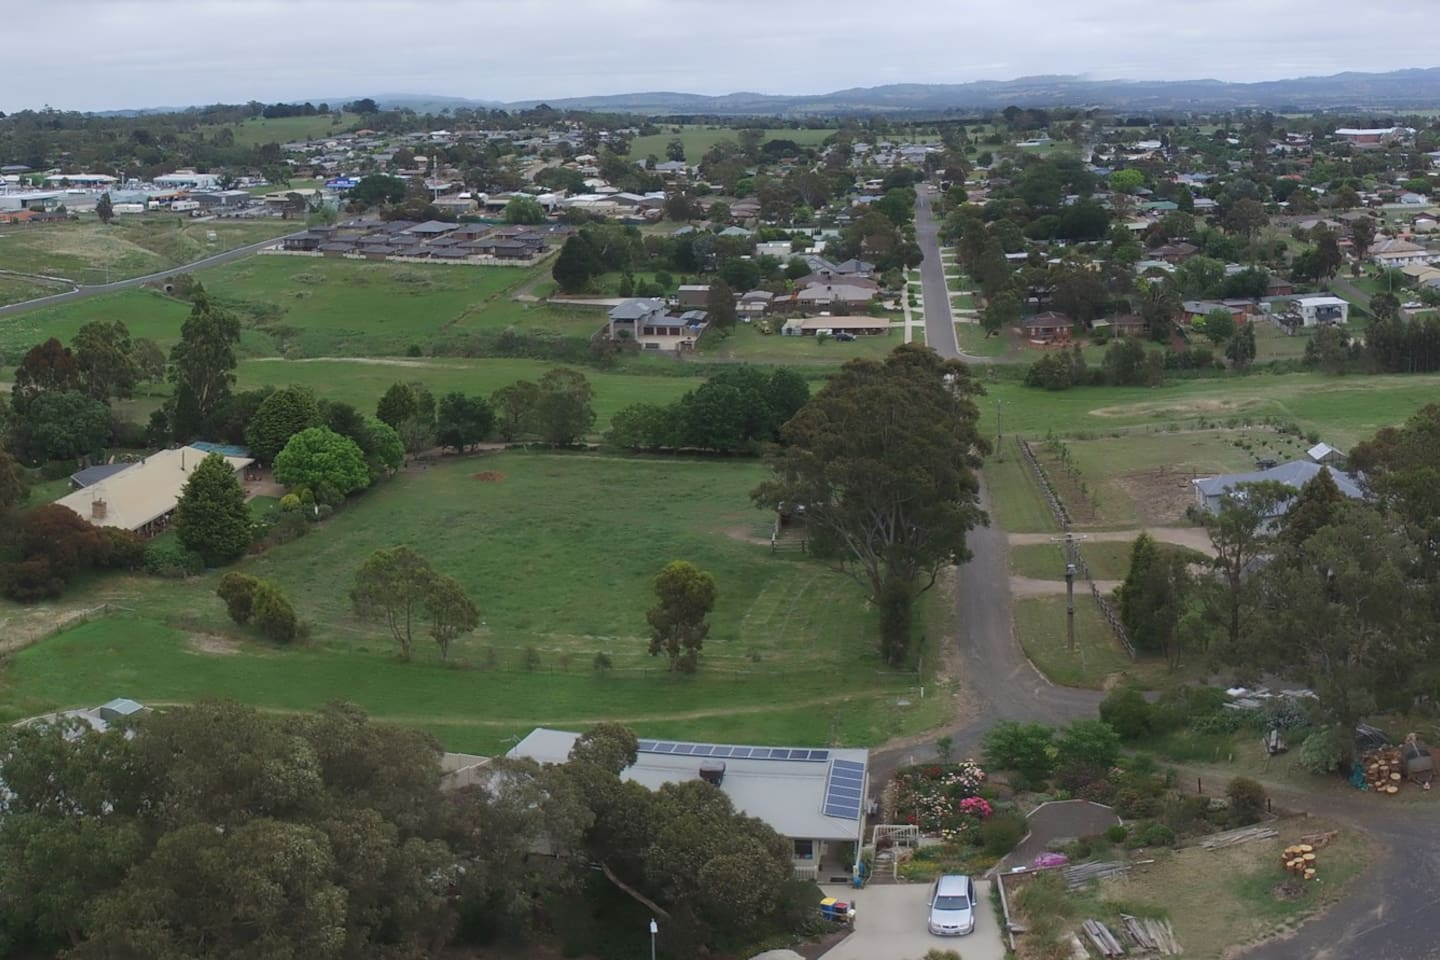 Ariel shot view , public area , other private property , Kilmore township  & Macedon ranges in the background